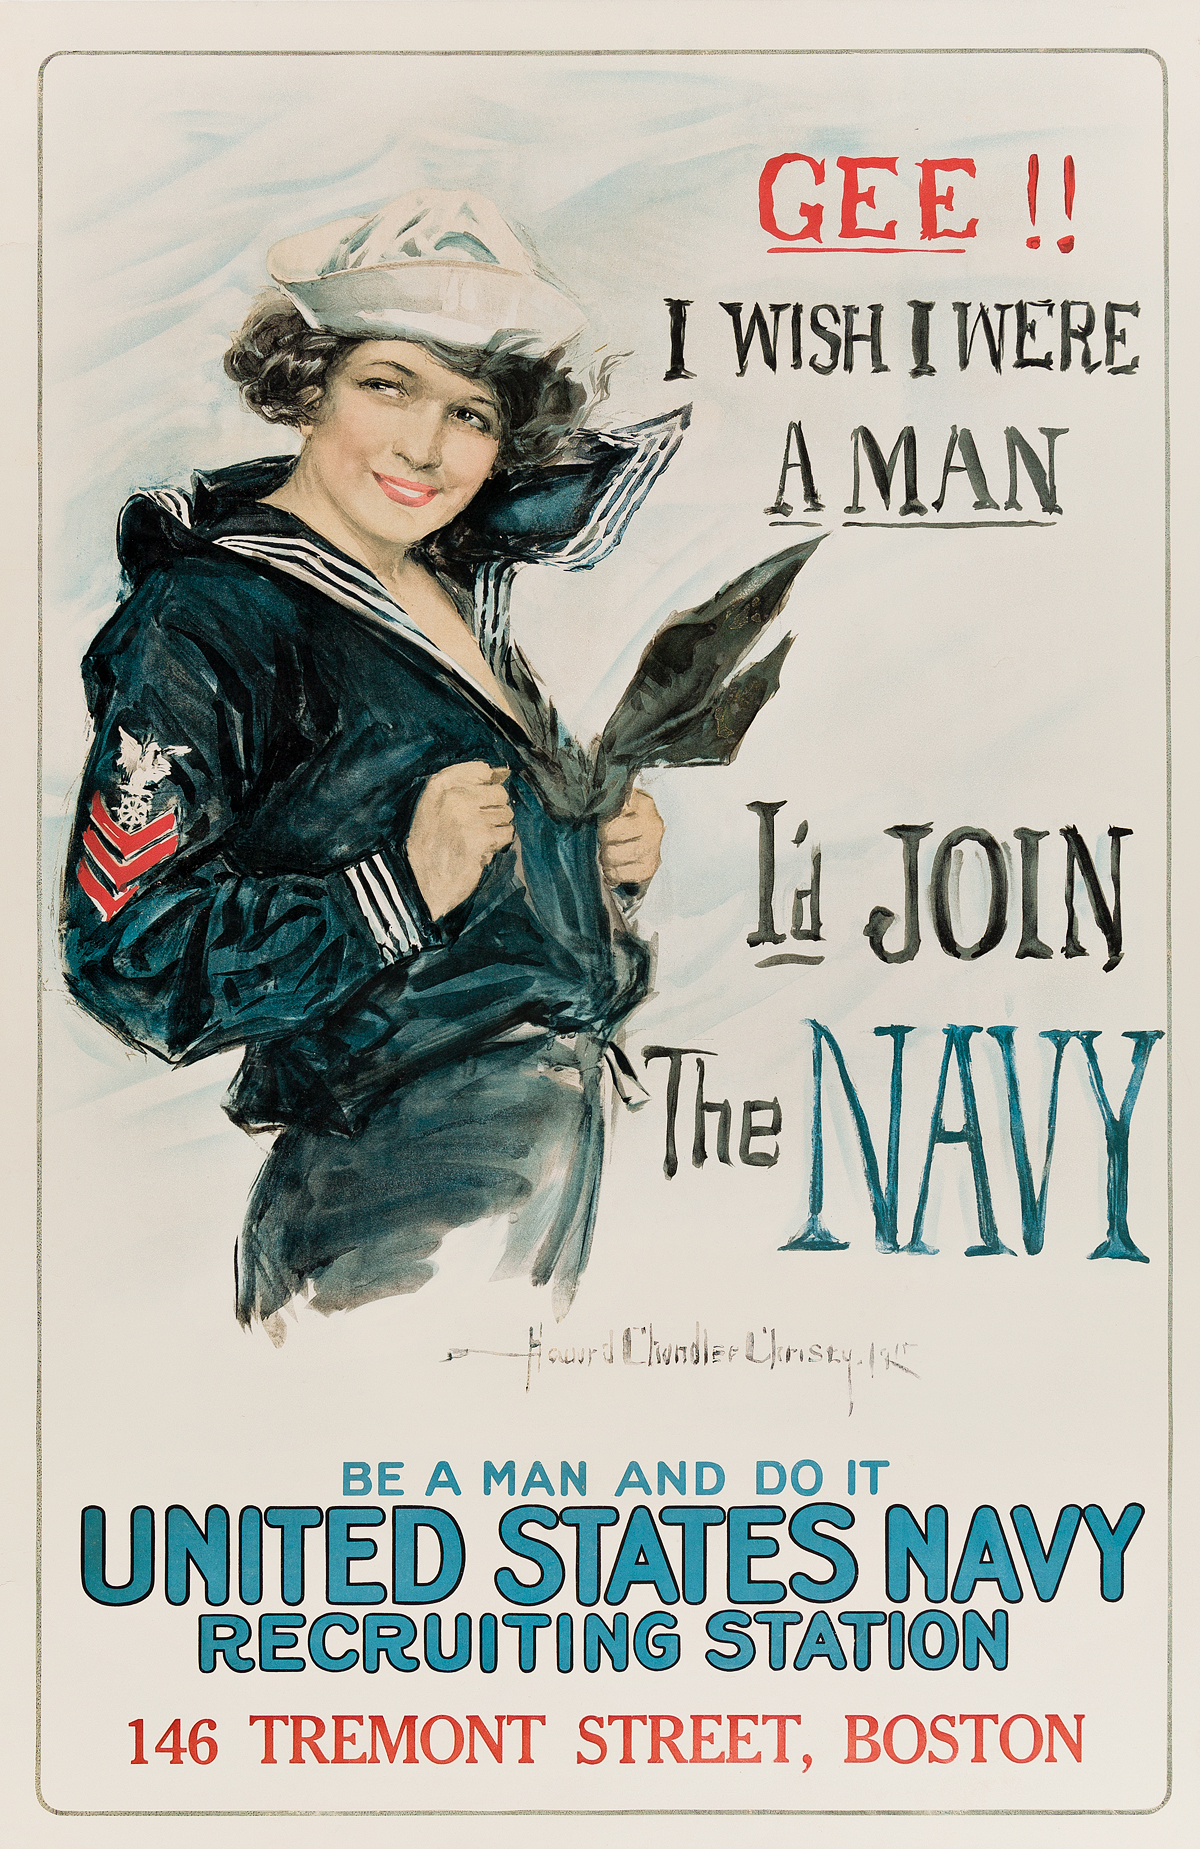 HOWARD-CHANDLER-CHRISTY-(1873-1952)-GEE-I-WISH-I-WERE-A-MAN--ID-JOIN-THE-NAVY-1918-41x27-inches-104x68-cm